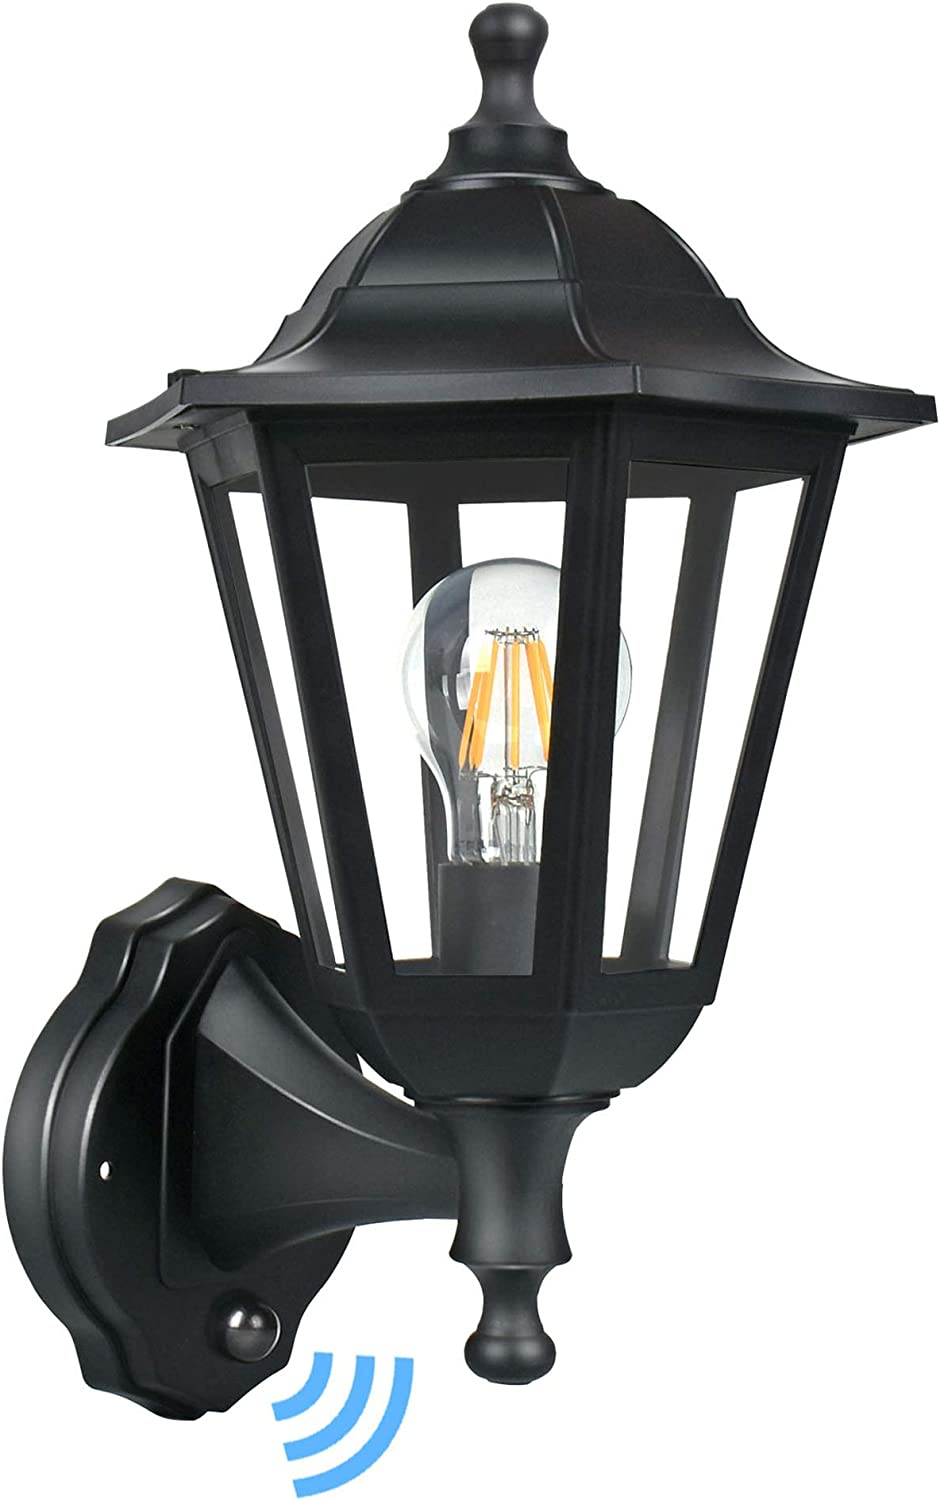 Fudesy Outdoor Wall Lanterns With Dusk To Dawn Sensor 8w Corded Electric Plastic Porch Light Fixtures Included Edison Bulbs P616 E26 Ps